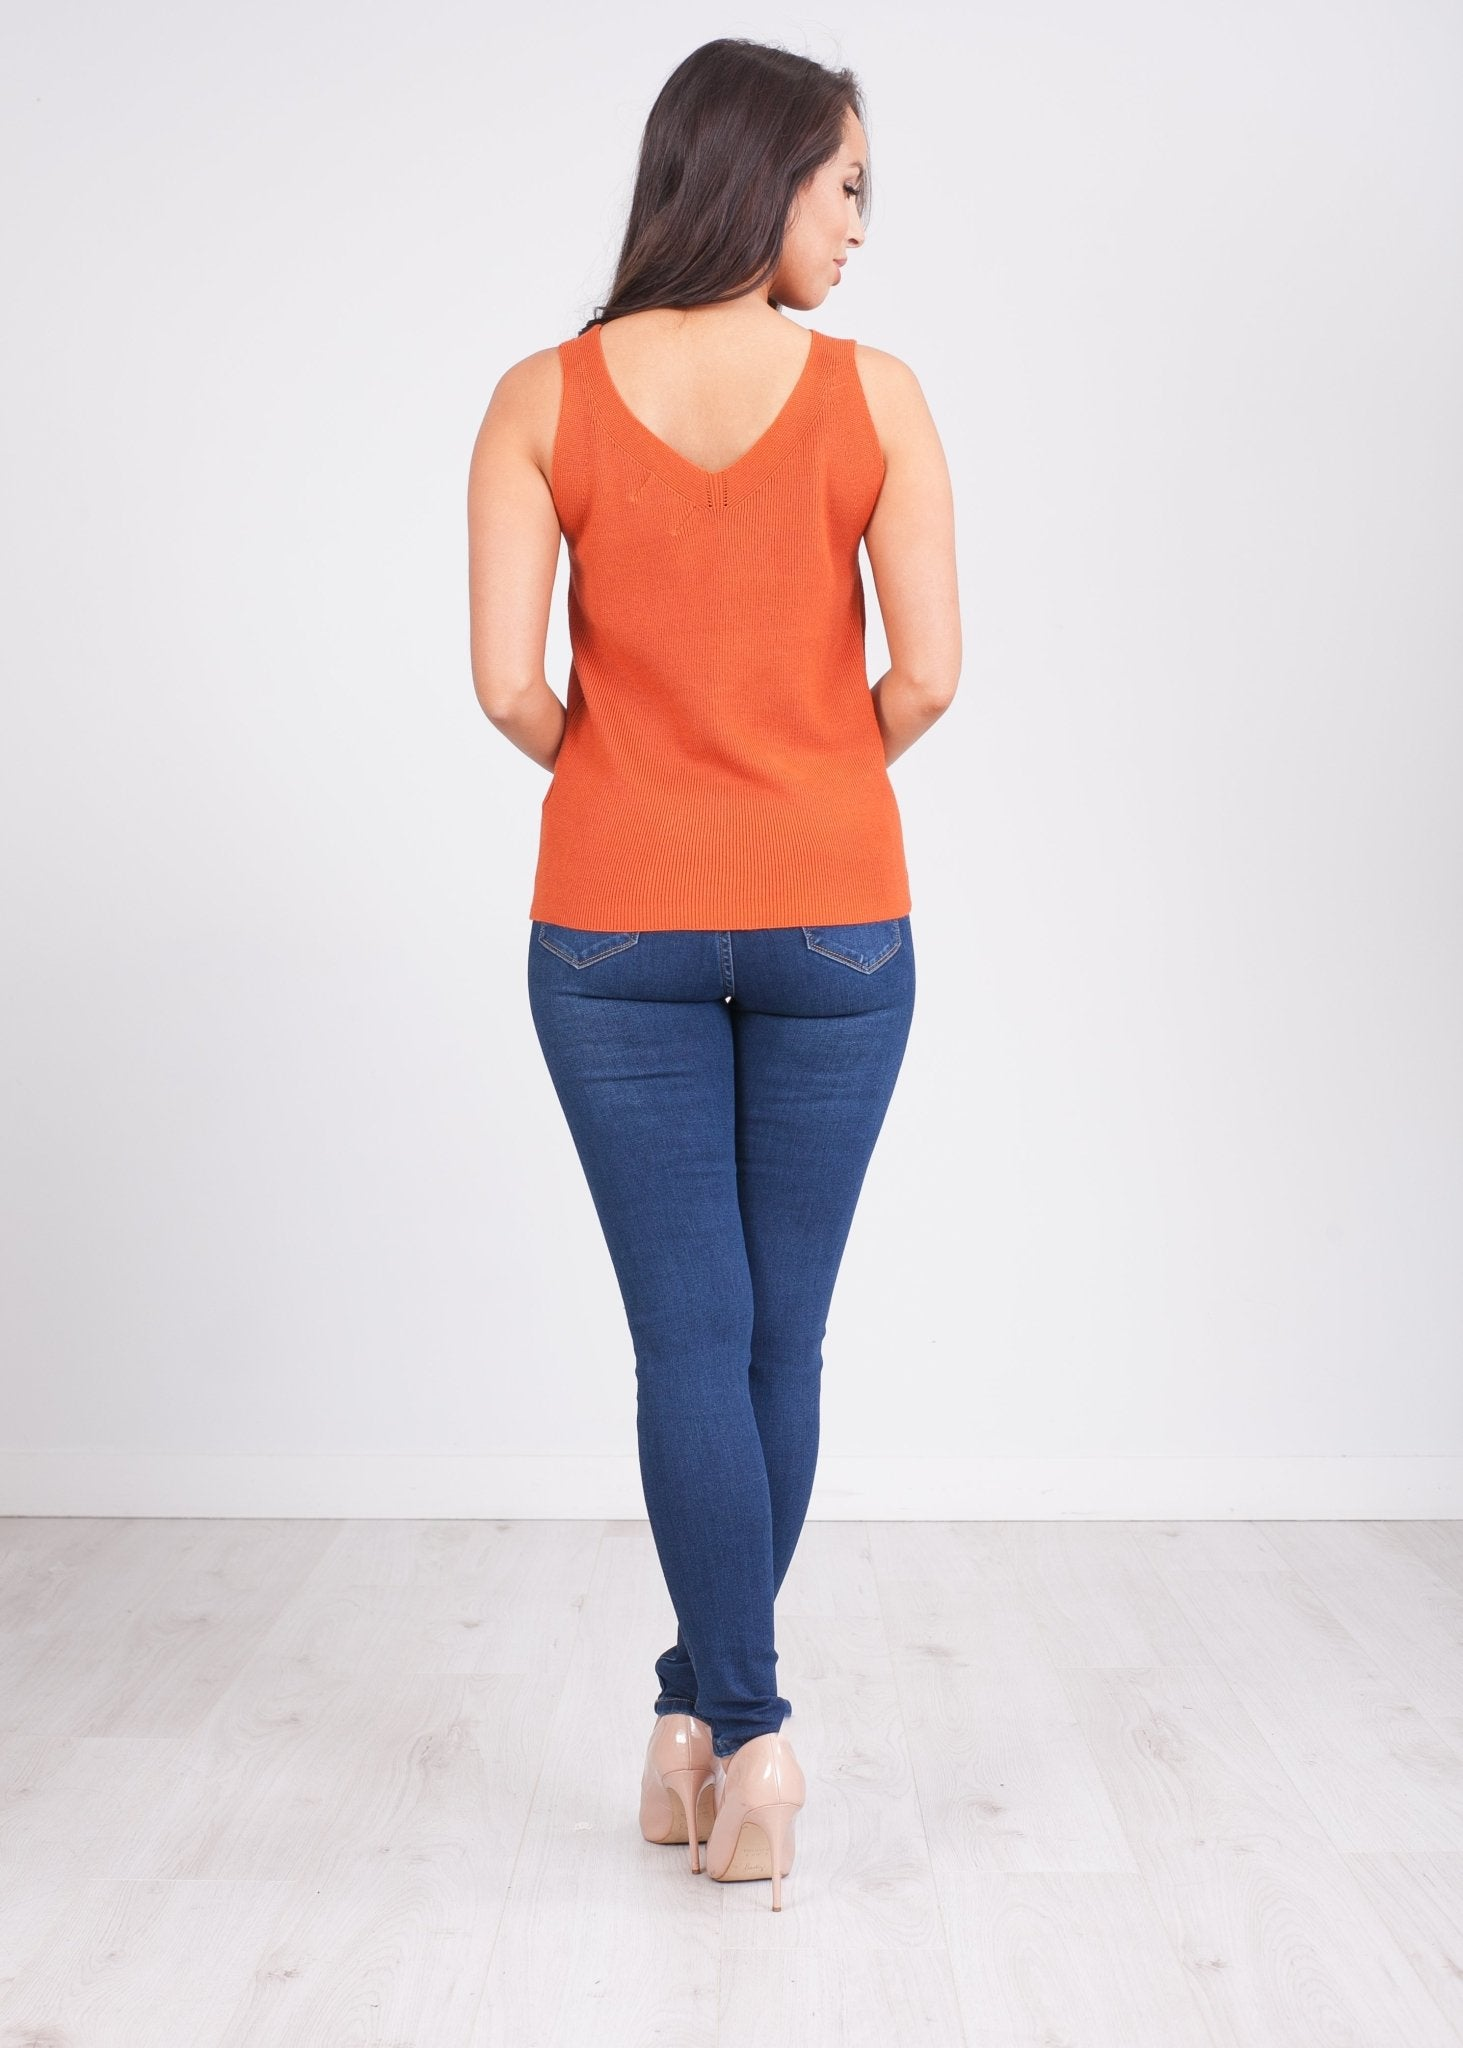 Frankie Rust Vest Top - The Walk in Wardrobe